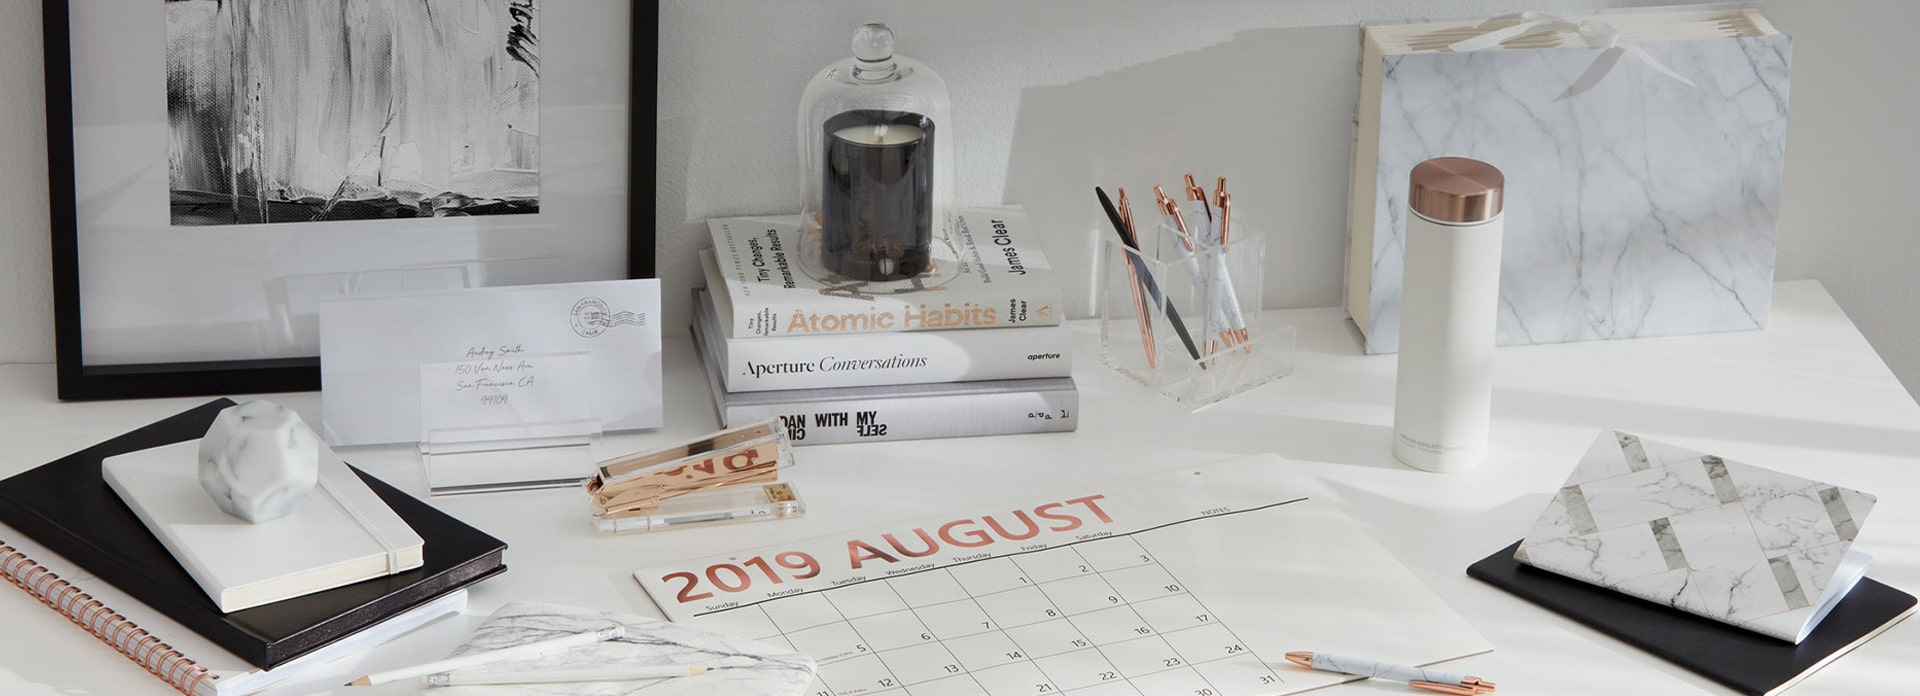 Monochrome desk with books stacked, calendar, pen holder, pencil, and marble pencil case